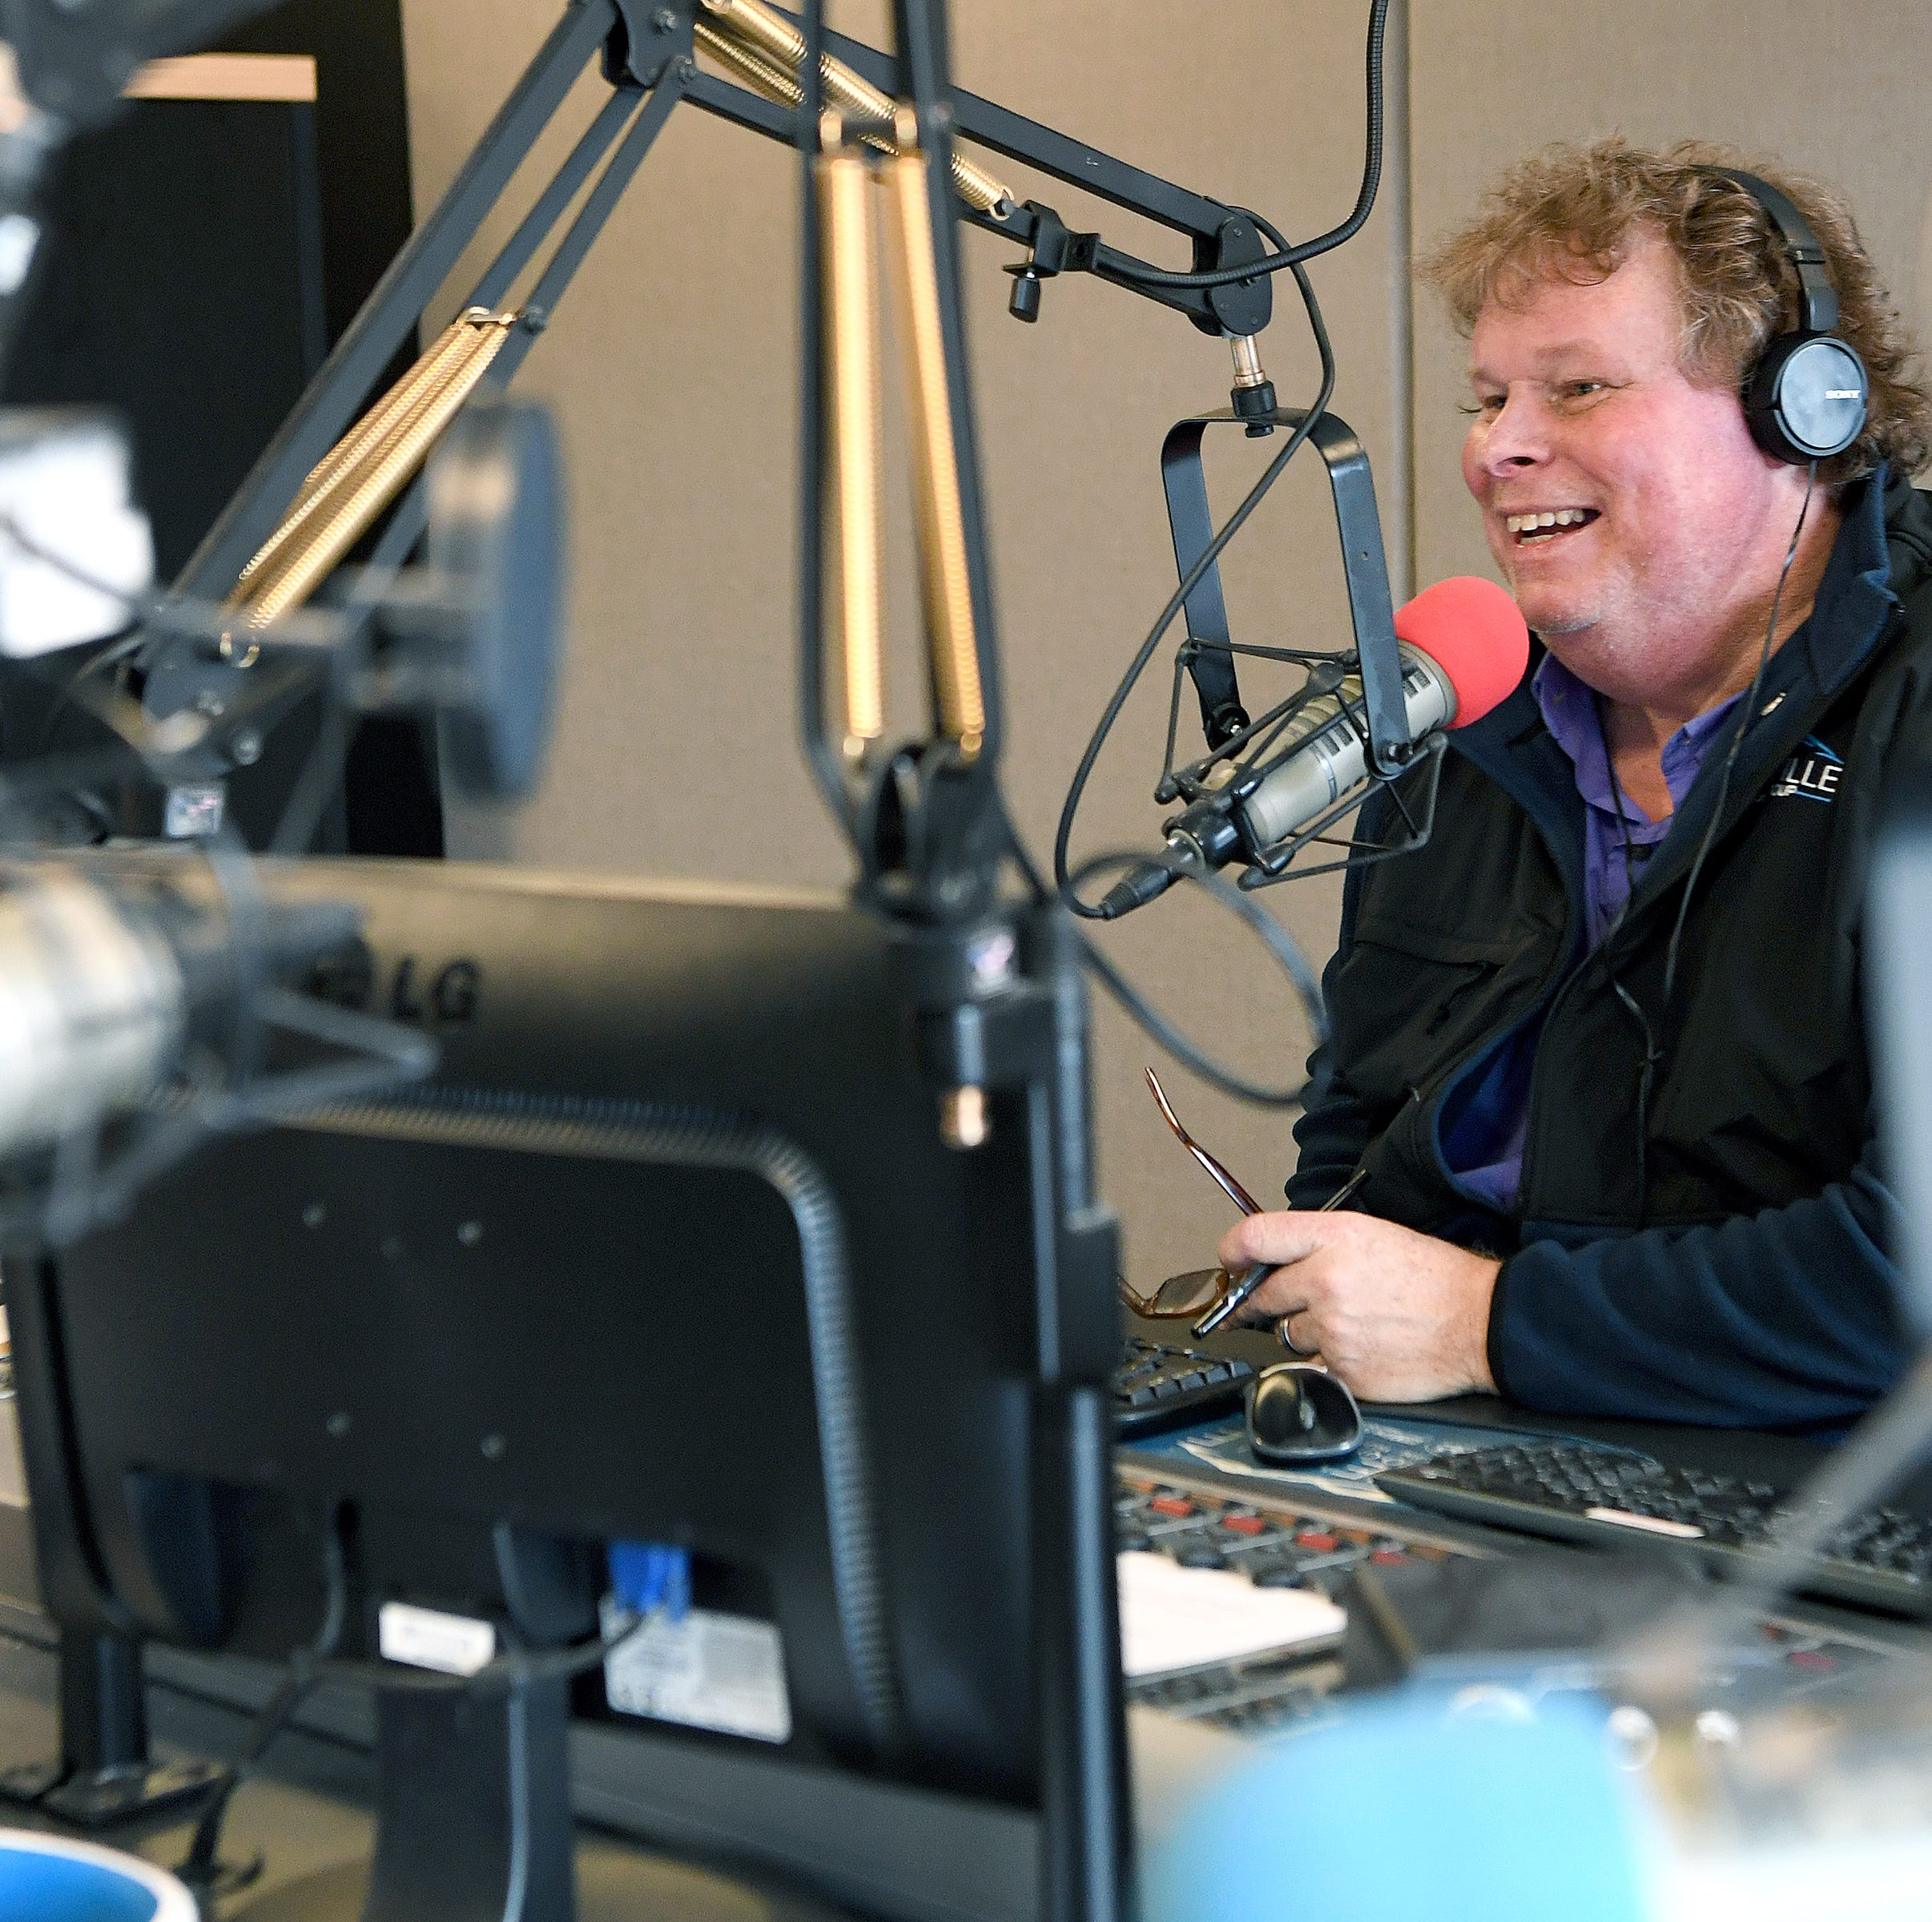 'WISE Guys' radio host Pat Ryan continues cancer fight with community support